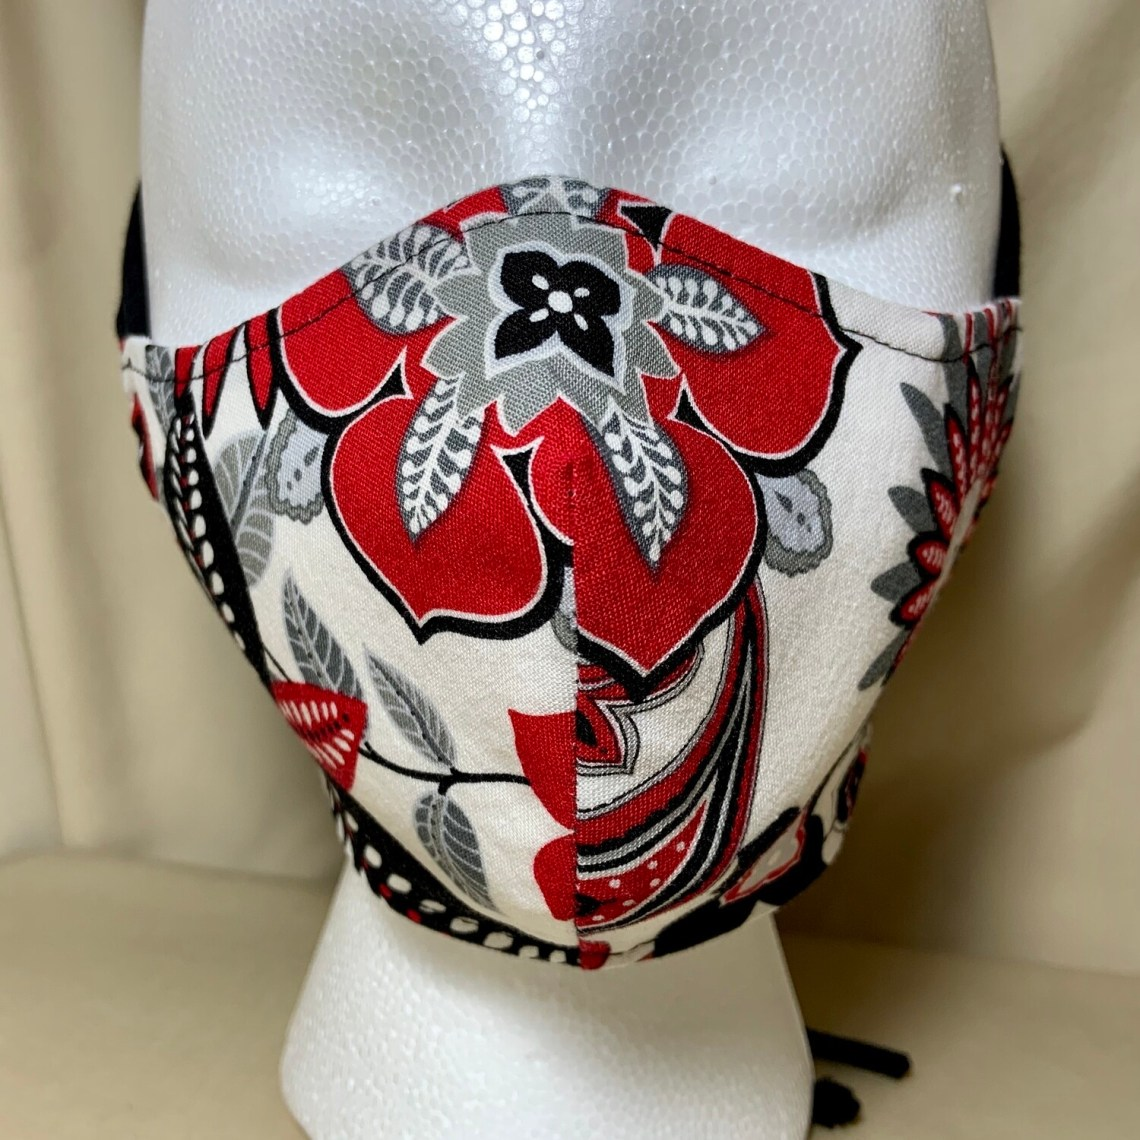 Red & Black Floral Face Covering - Small - Non-Medical